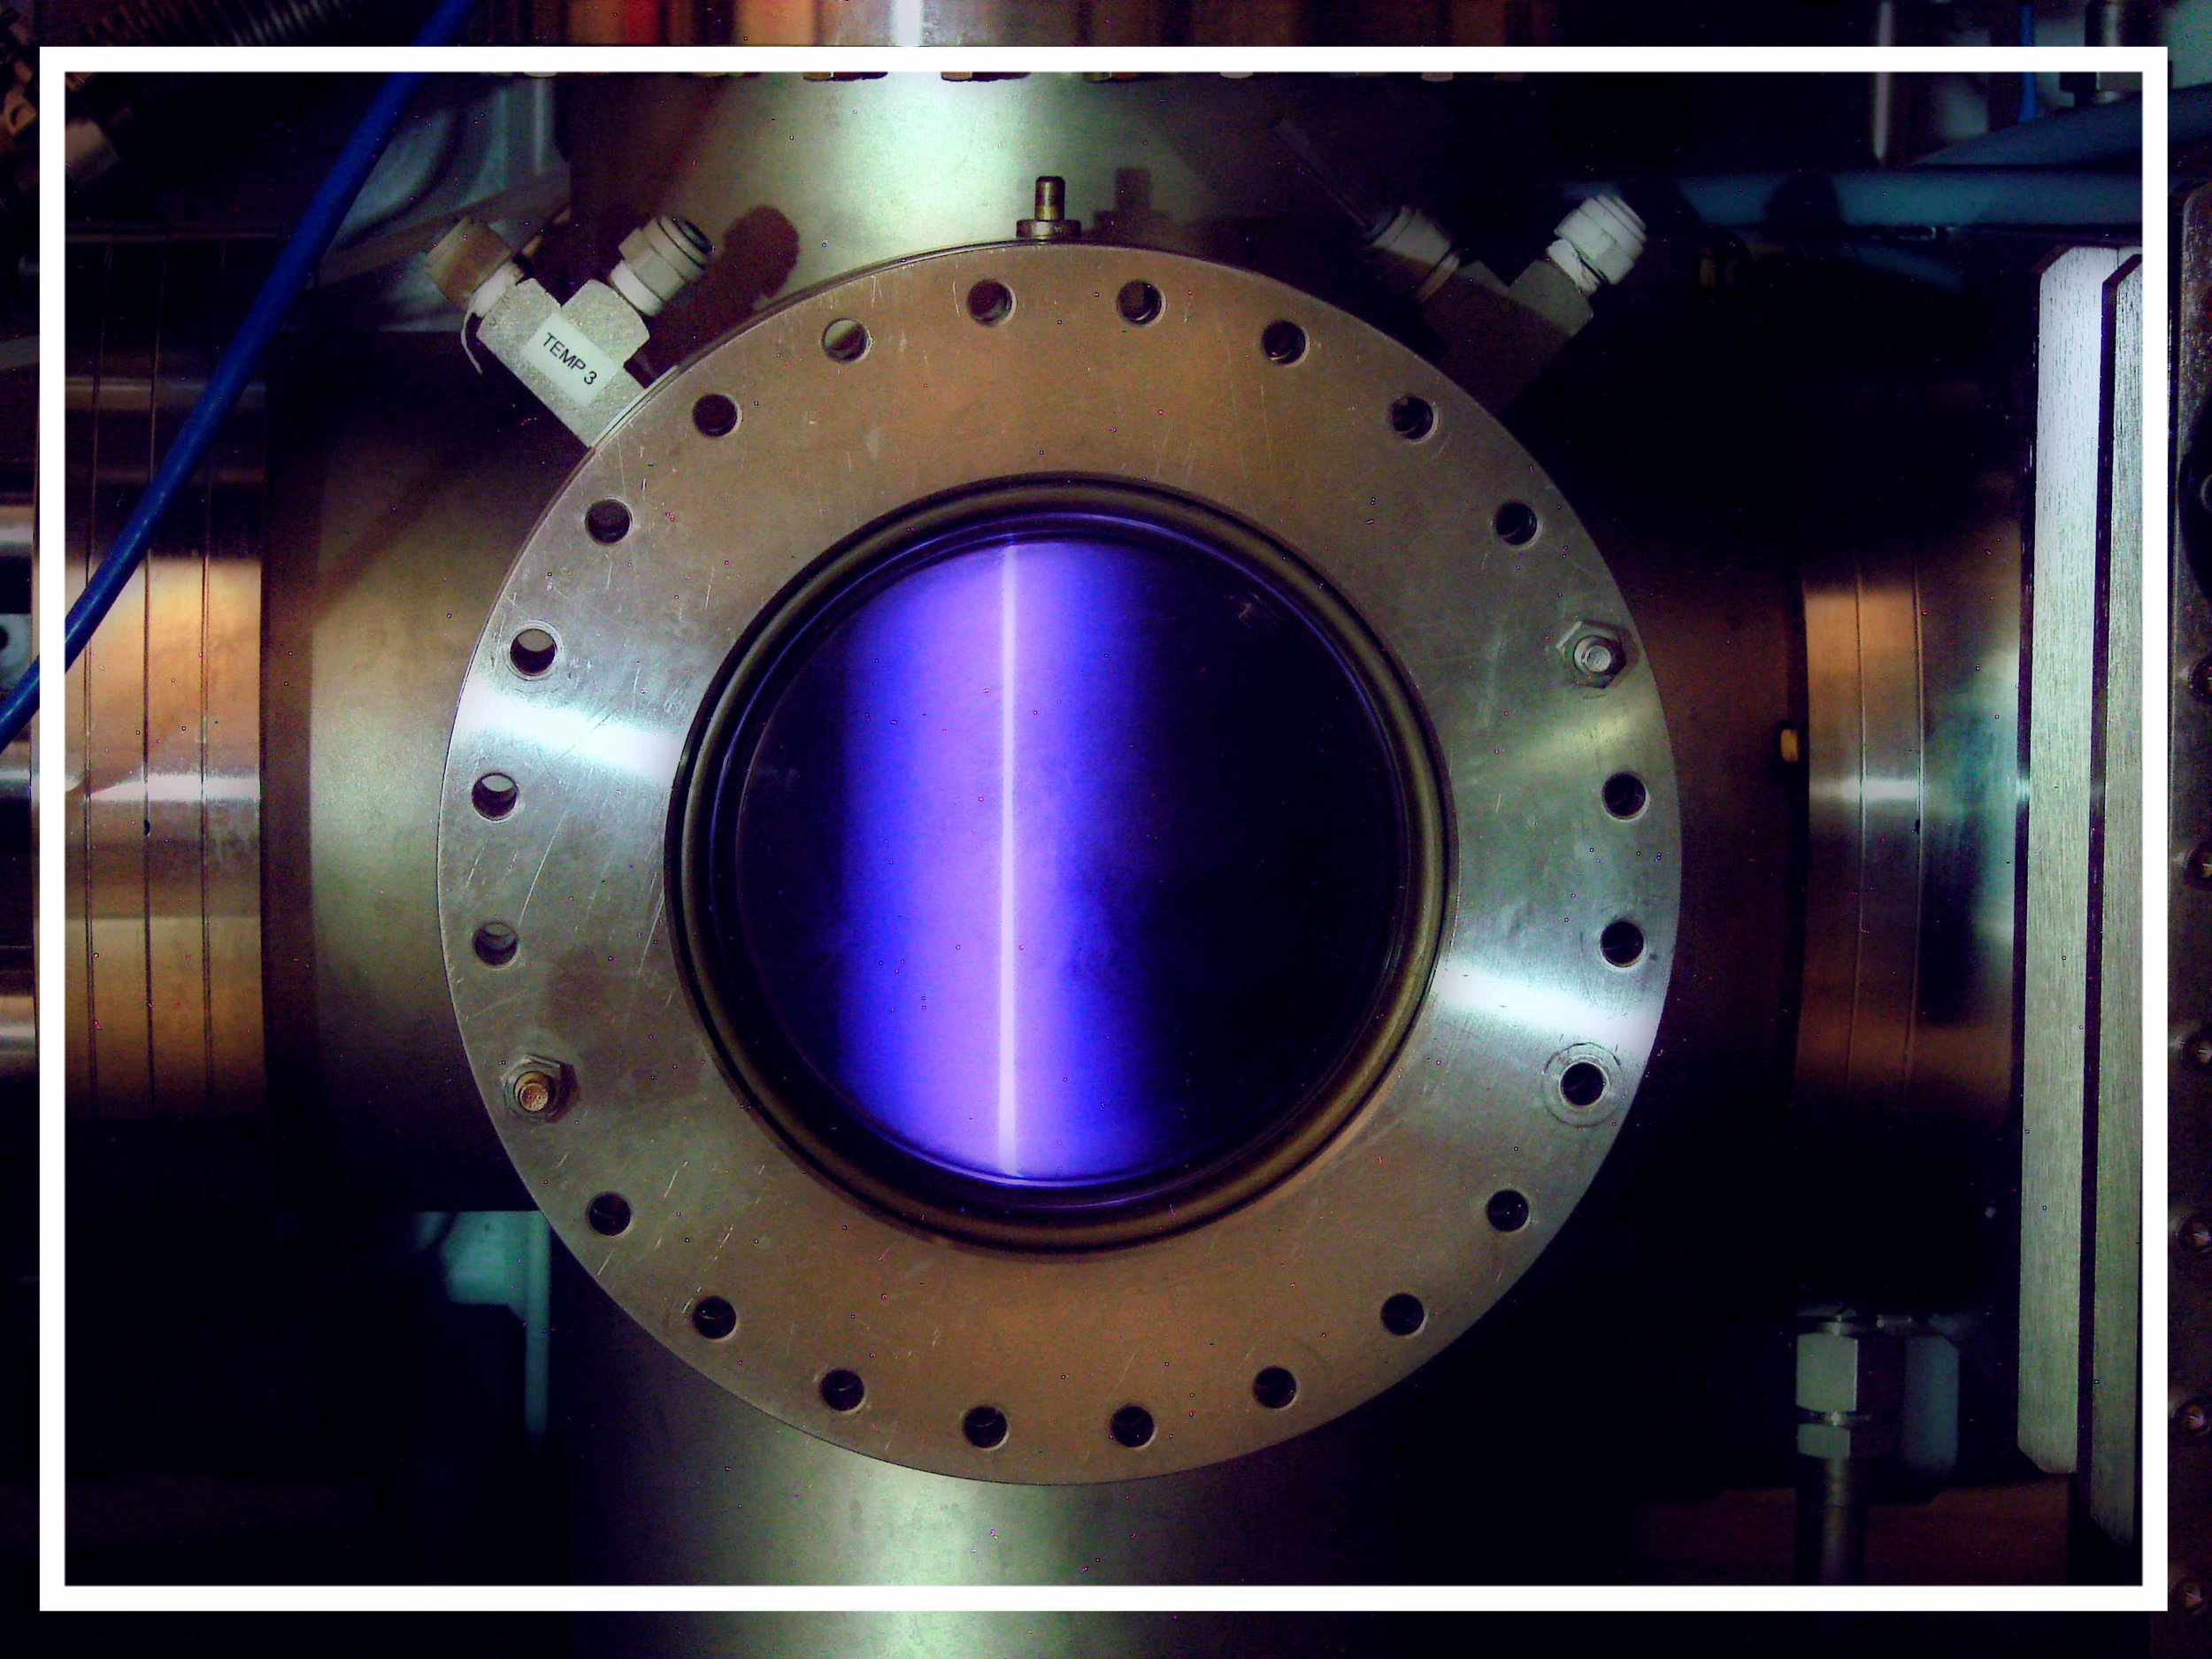 Accelerator Based Technology - The Phoenix neutron technology uses a high-current particle accelerator that drives an ion beam into a gaseous or solid target.  Small enough to fit on-site, powerful enough to get the job done.